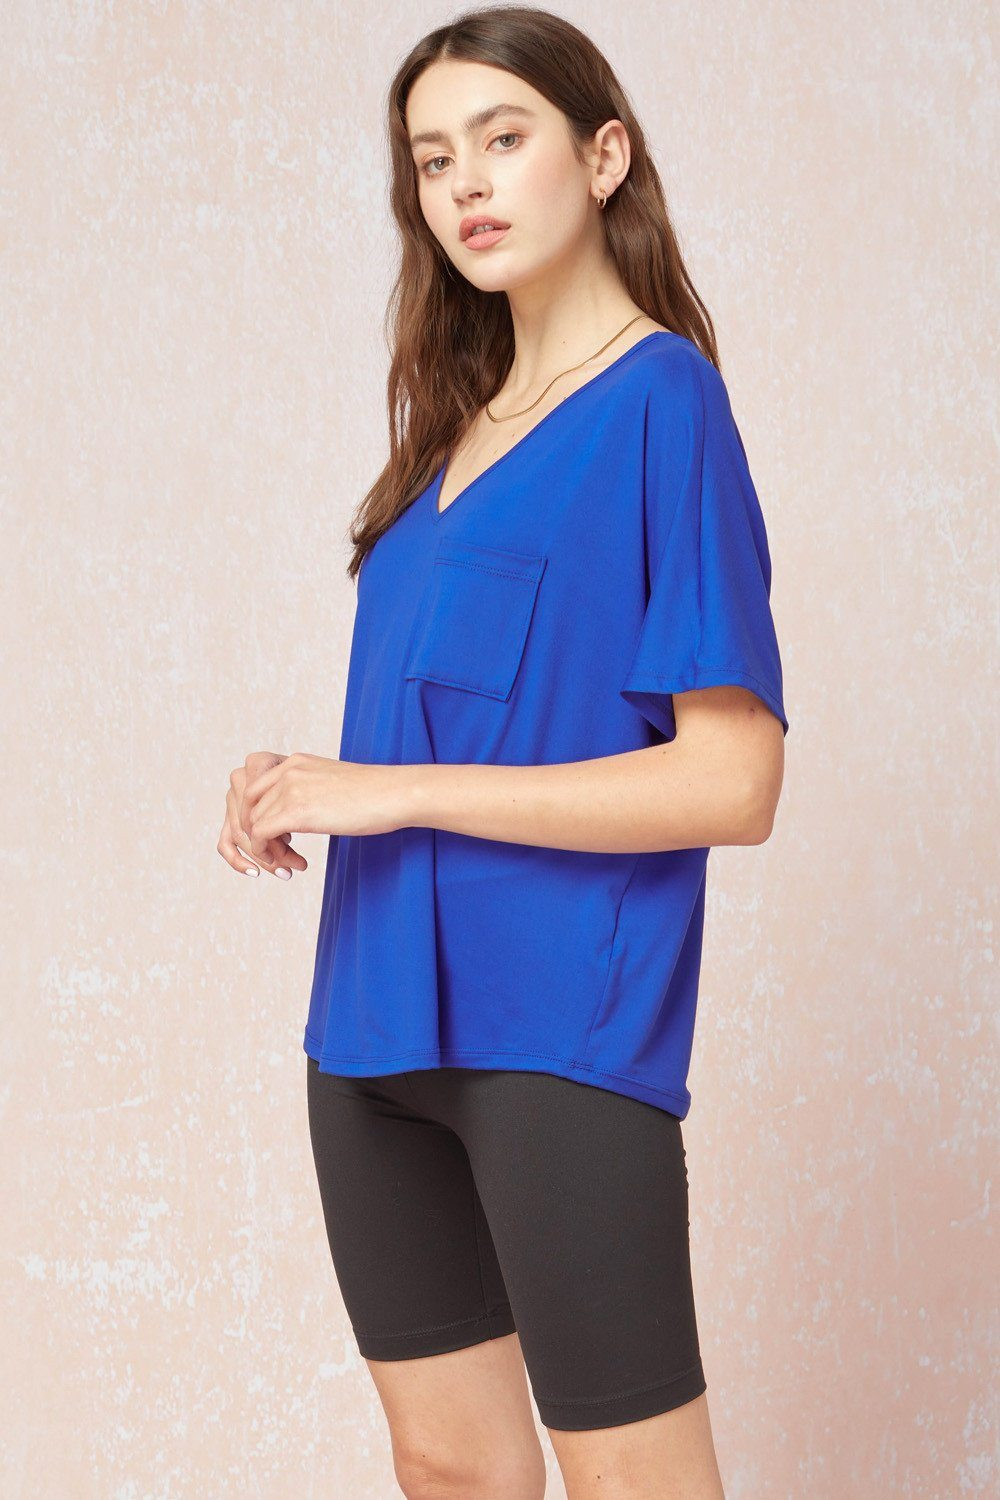 Super Soft Royal Blue Top - Caroline Hill